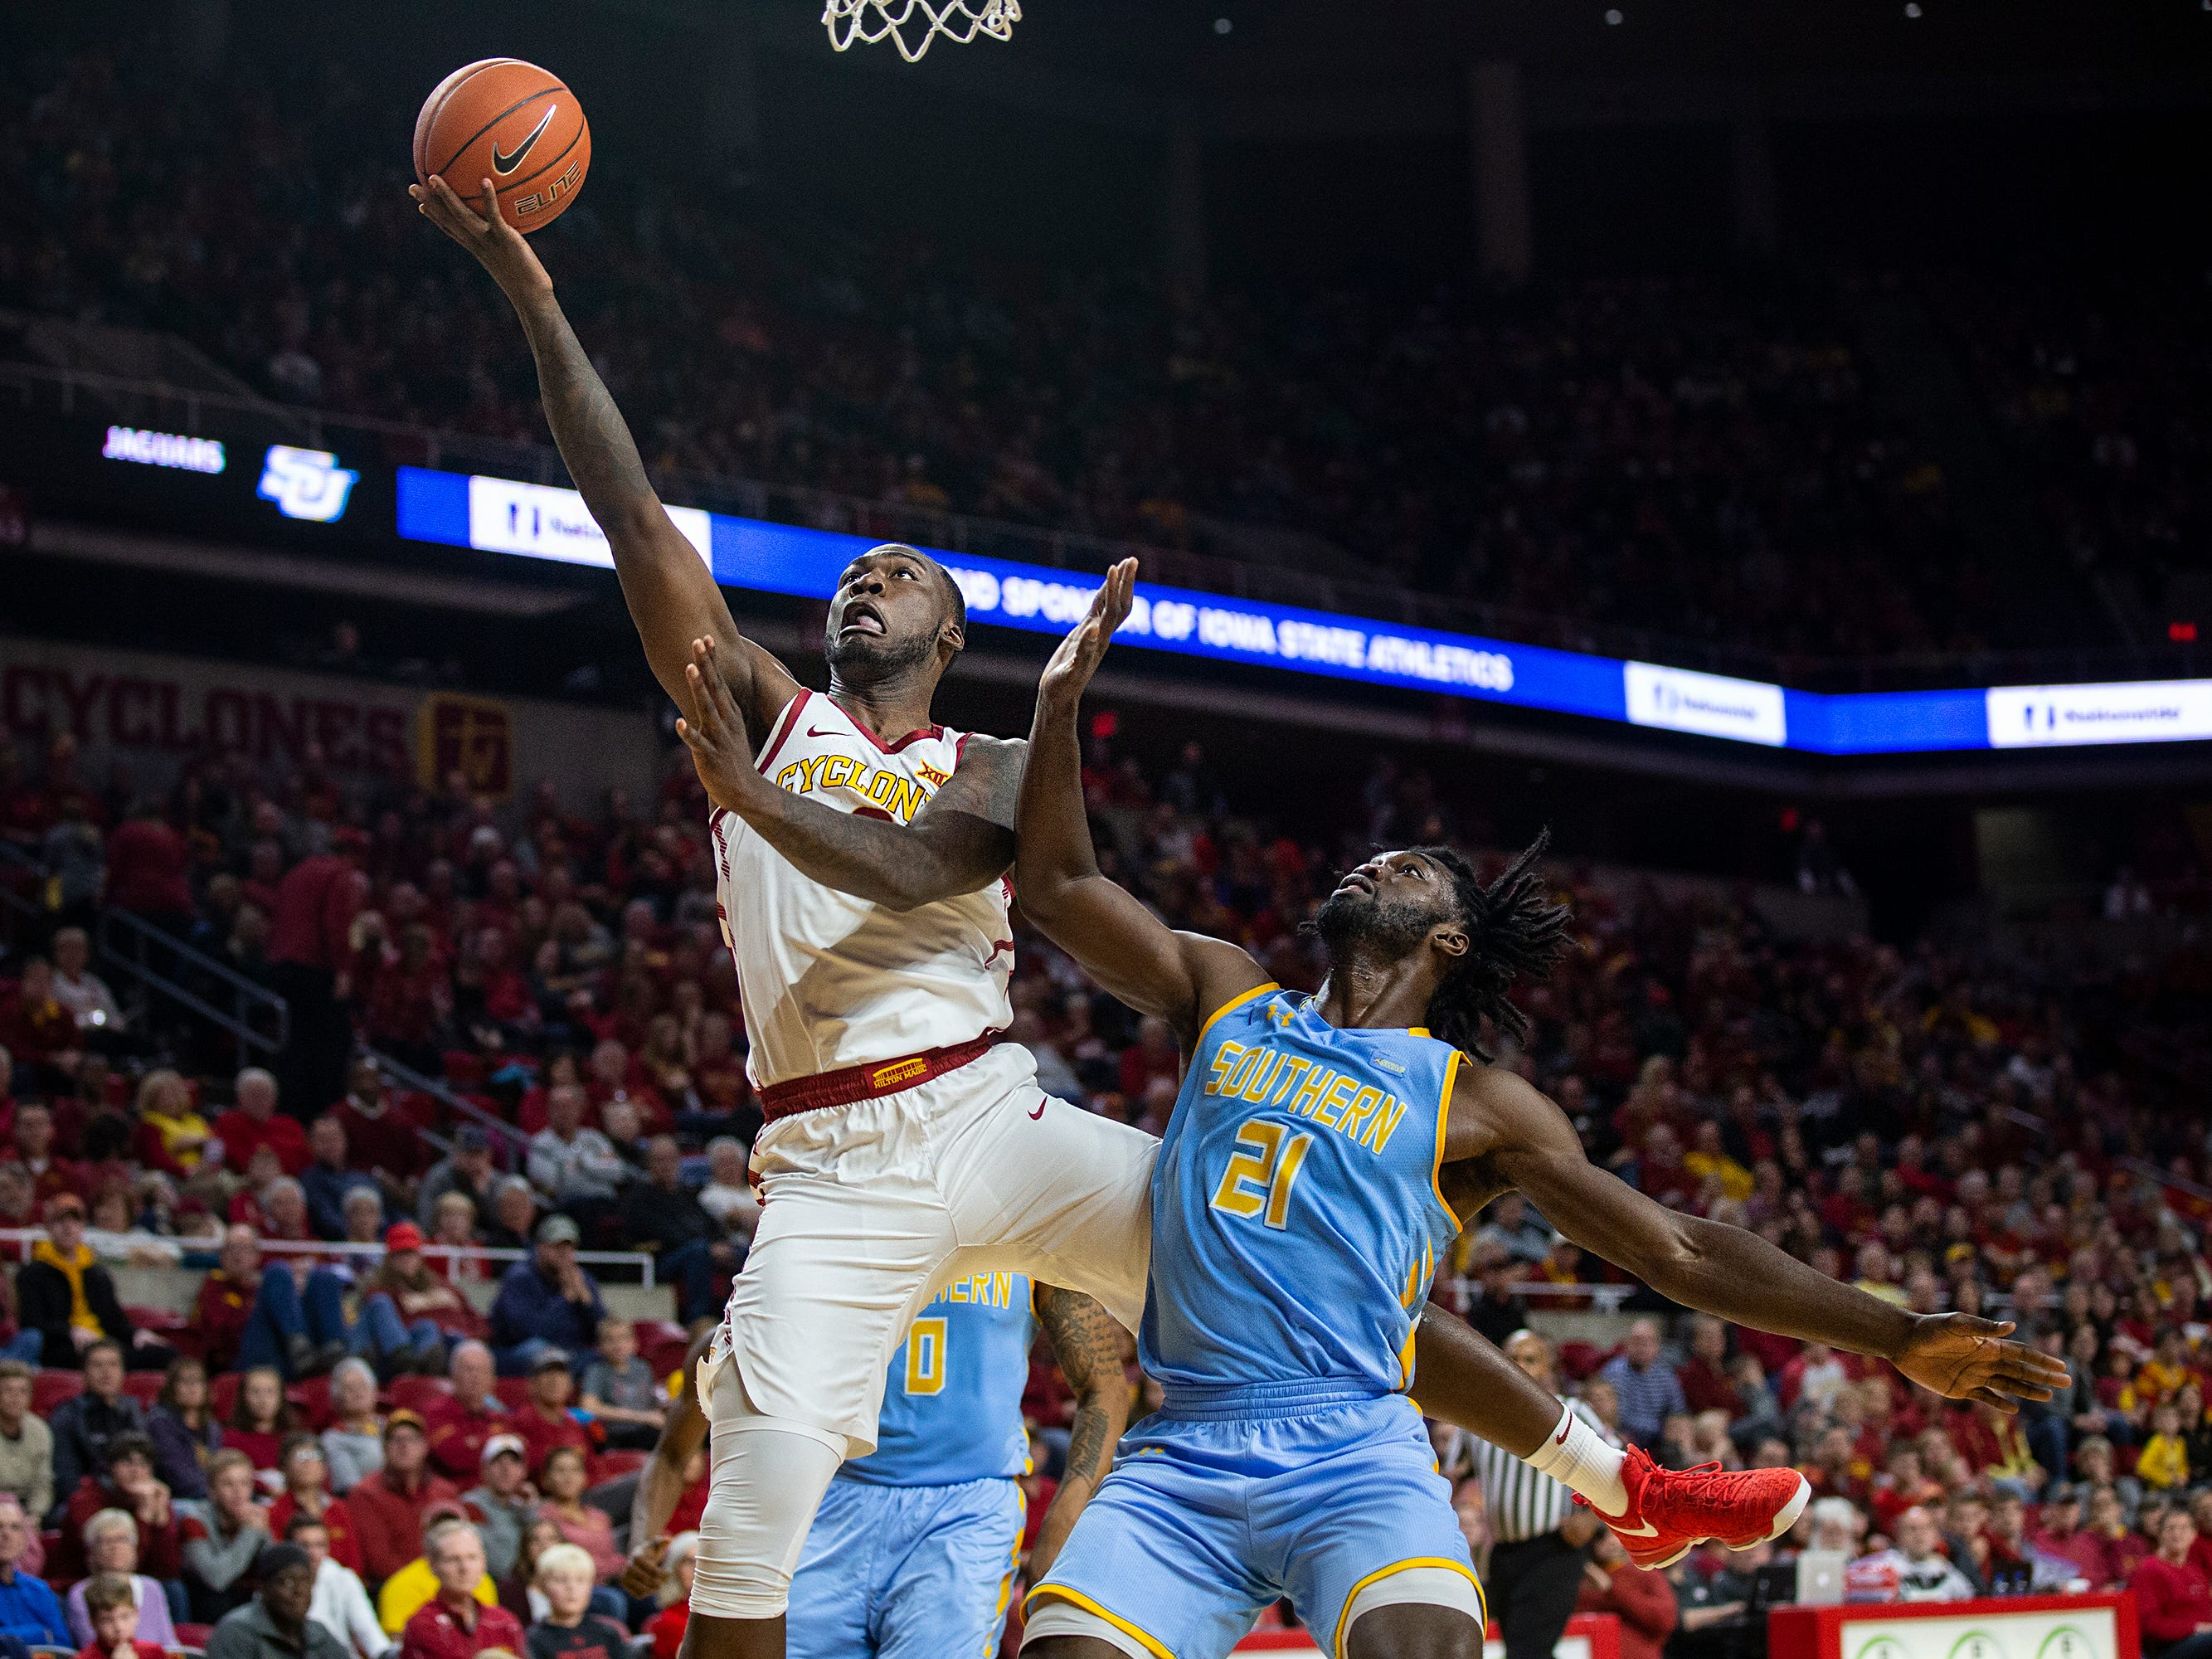 Iowa State's Cameron Lard shoots the ball during the Iowa State men's basketball game against Southern on Sunday, Dec. 9, 2018, in Hilton Coliseum.